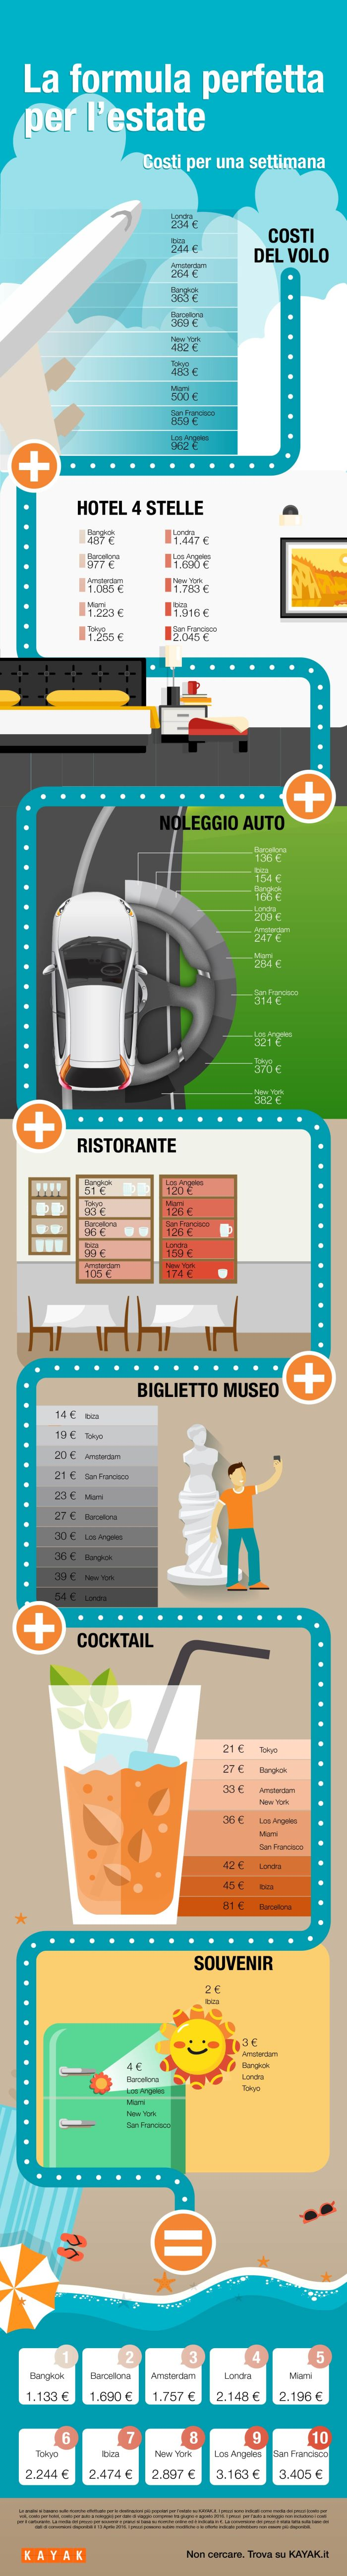 Infografica_Summer Holiday Formula